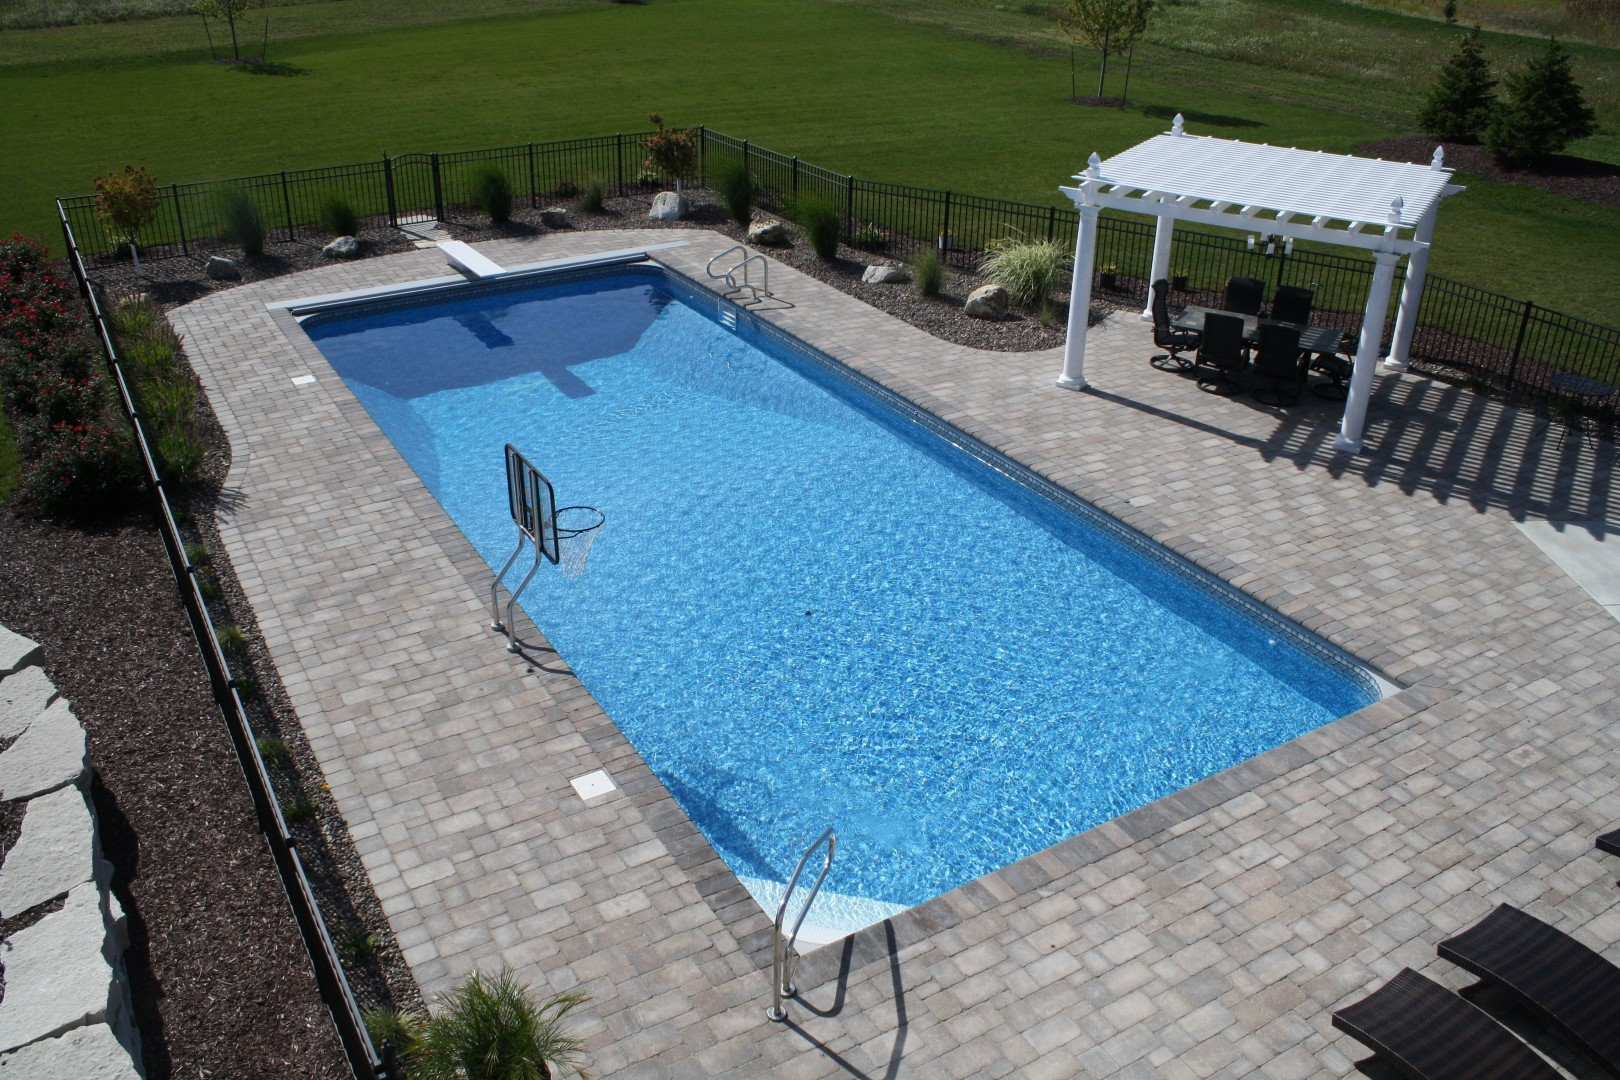 Completed Inground Pools by Penguin Pools -Your Complete ...